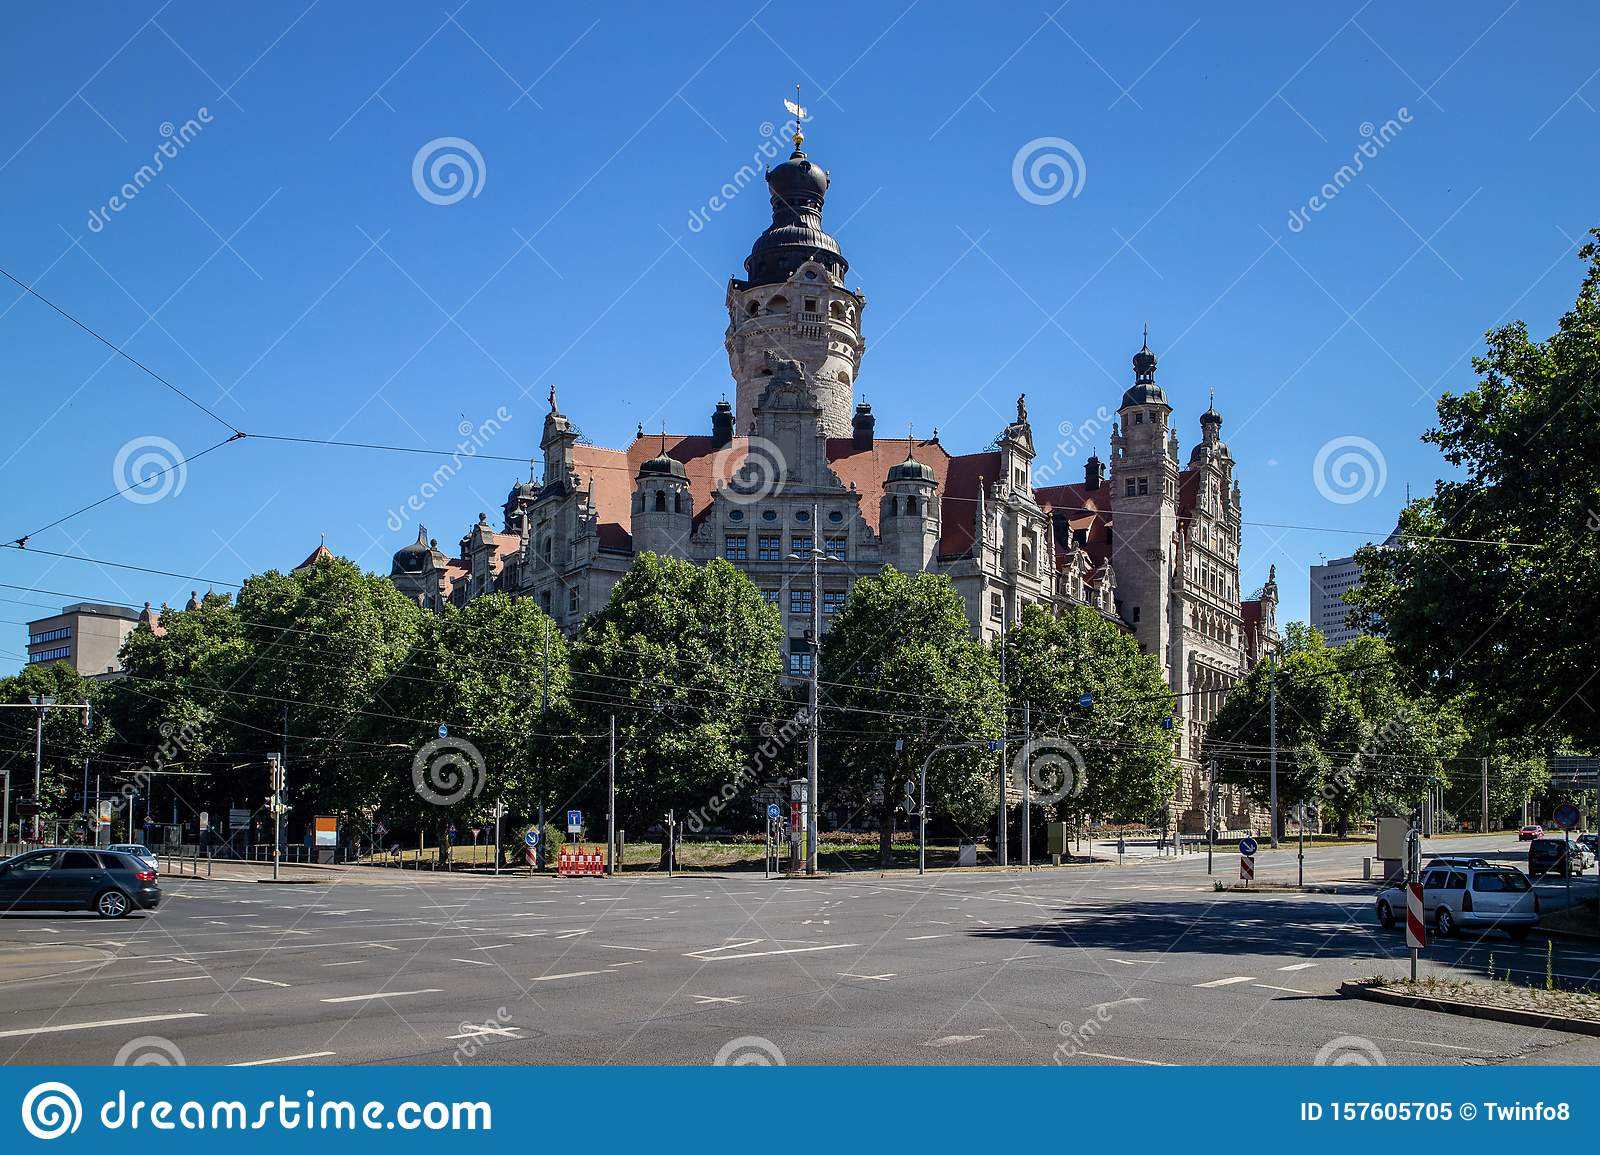 New Leipzig Town Hall With A Big Street Crossing Stock Image Image Of Famous House 157605705